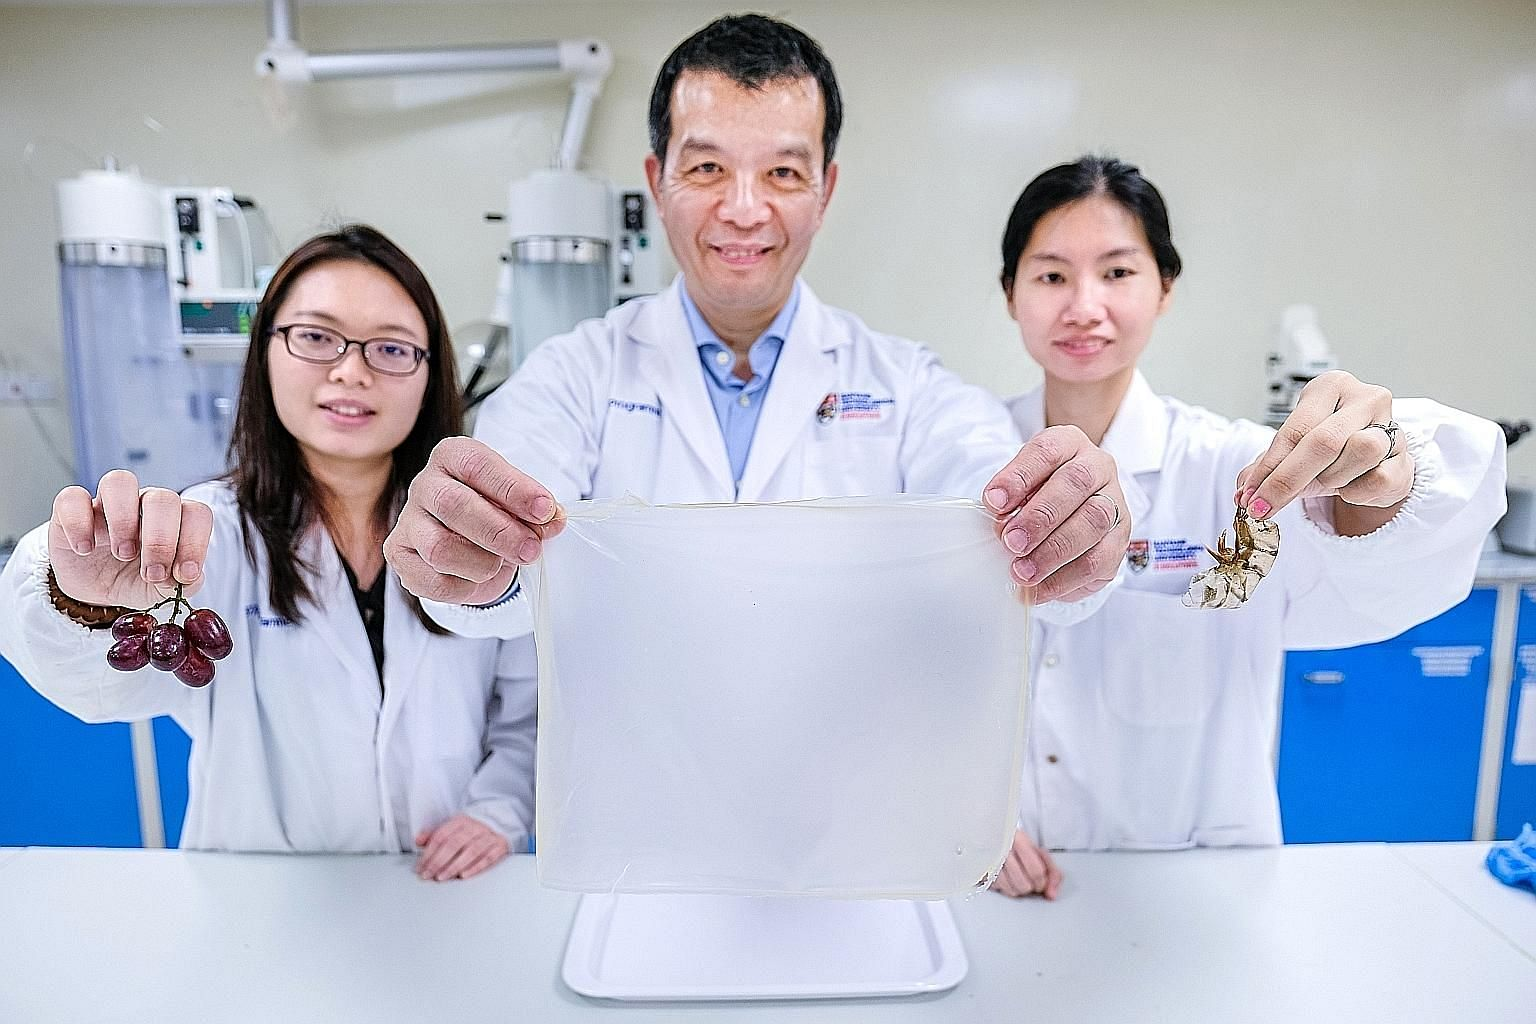 (From left) Nanyang Technological University research officer Lee Pei Pei, Professor William Chen, director of NTU's food science and technology programme, and PhD student Tan Yun Nian, with the food-grade film packaging created from prawn shells and